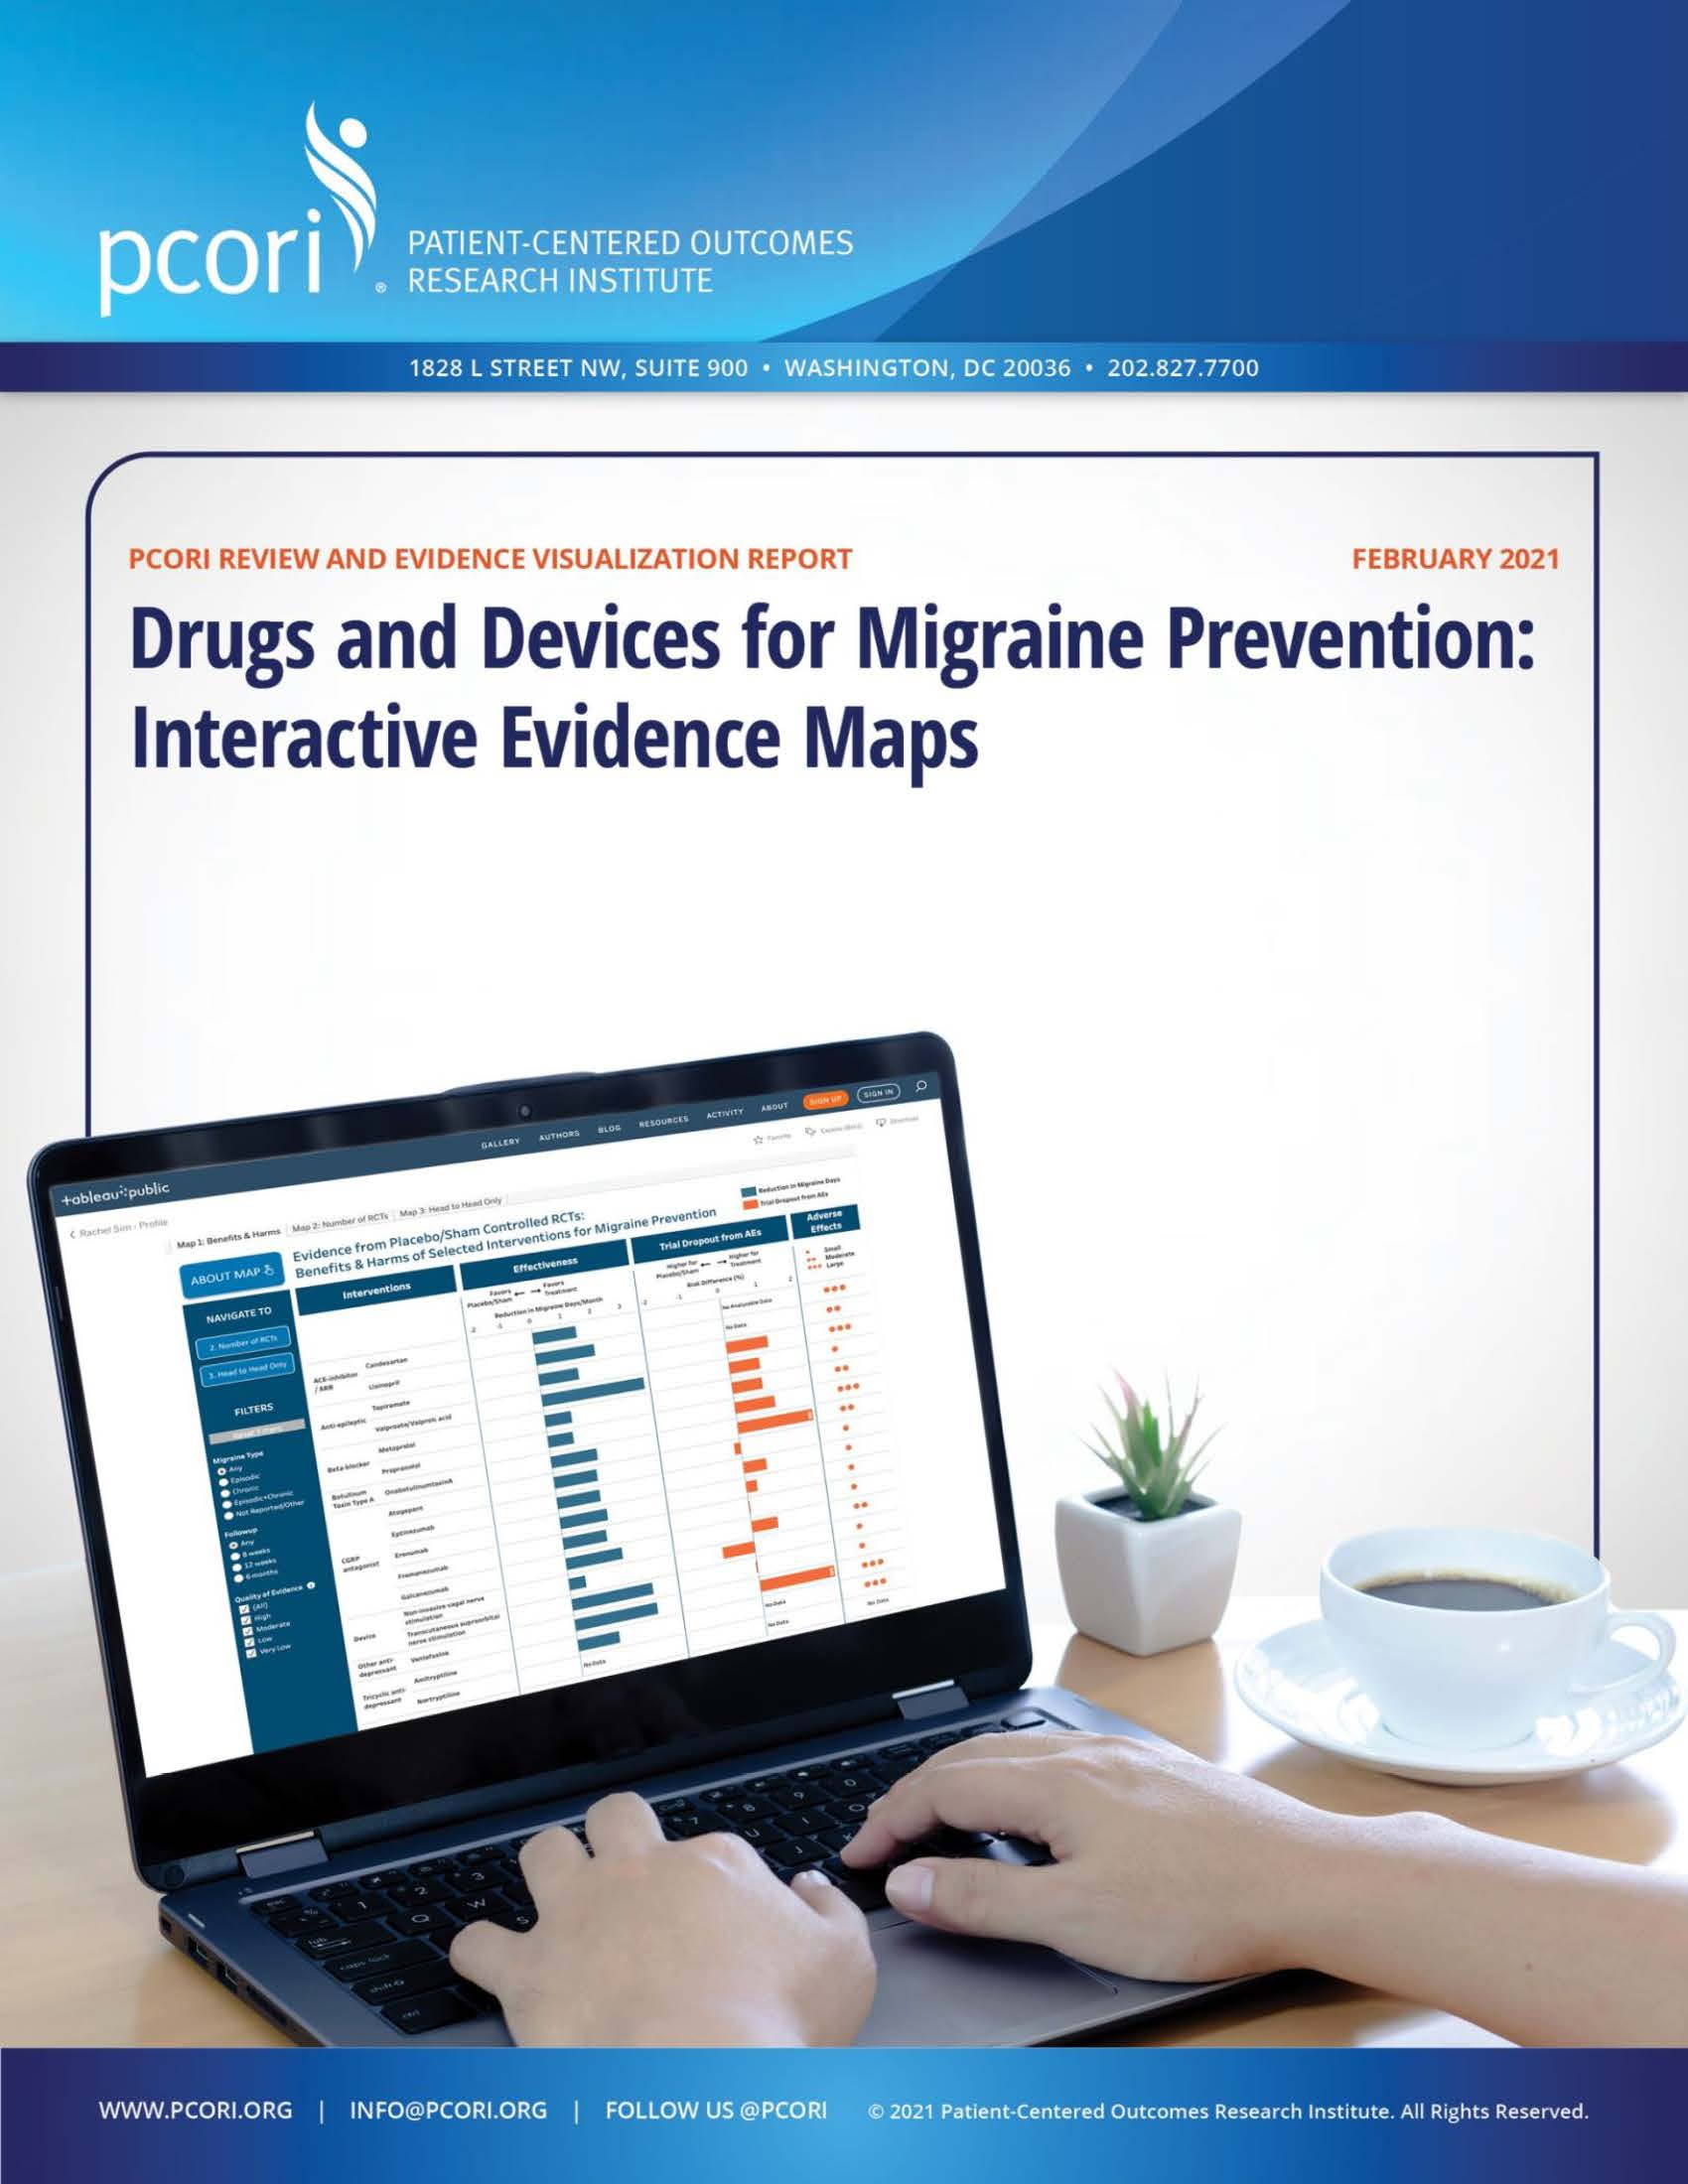 The cover of the PCORI Drug and Devices for Migraine Prevention: Interactive Evidence Maps report. The image shows a laptop with the migraine prevention evidence map on the screen with a person's hands on the keyboard.